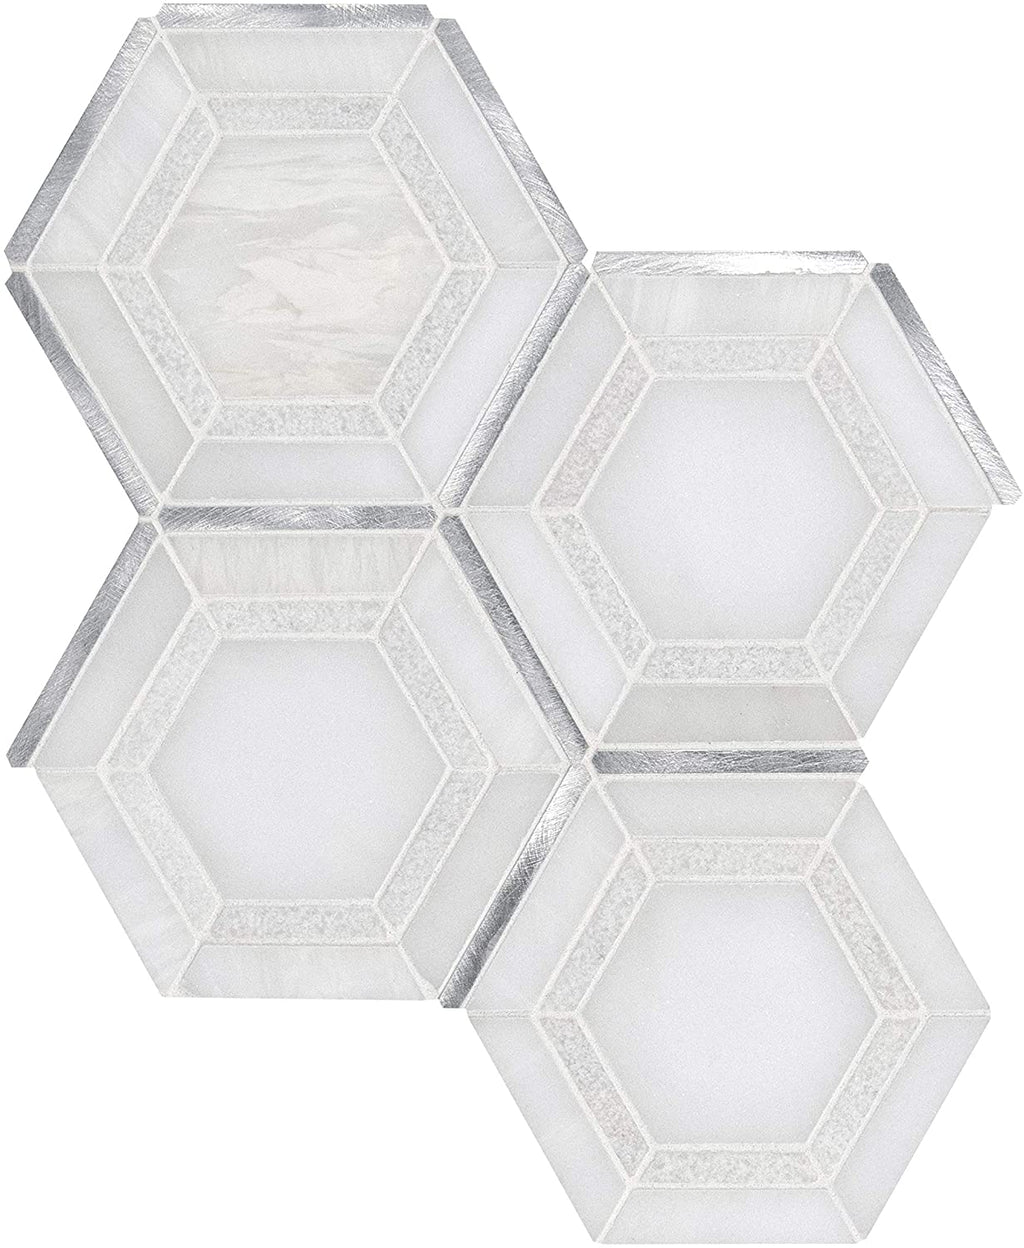 MS International Medici Silver Pattern 12.44 in. x 10.83 in. Marble Mesh-Mounted Mosaic Wall Tile for Bathroom, Floor Tile, Kitchen Backsplash and Countertop Tile, Gray, White, Silver - Free Shipping